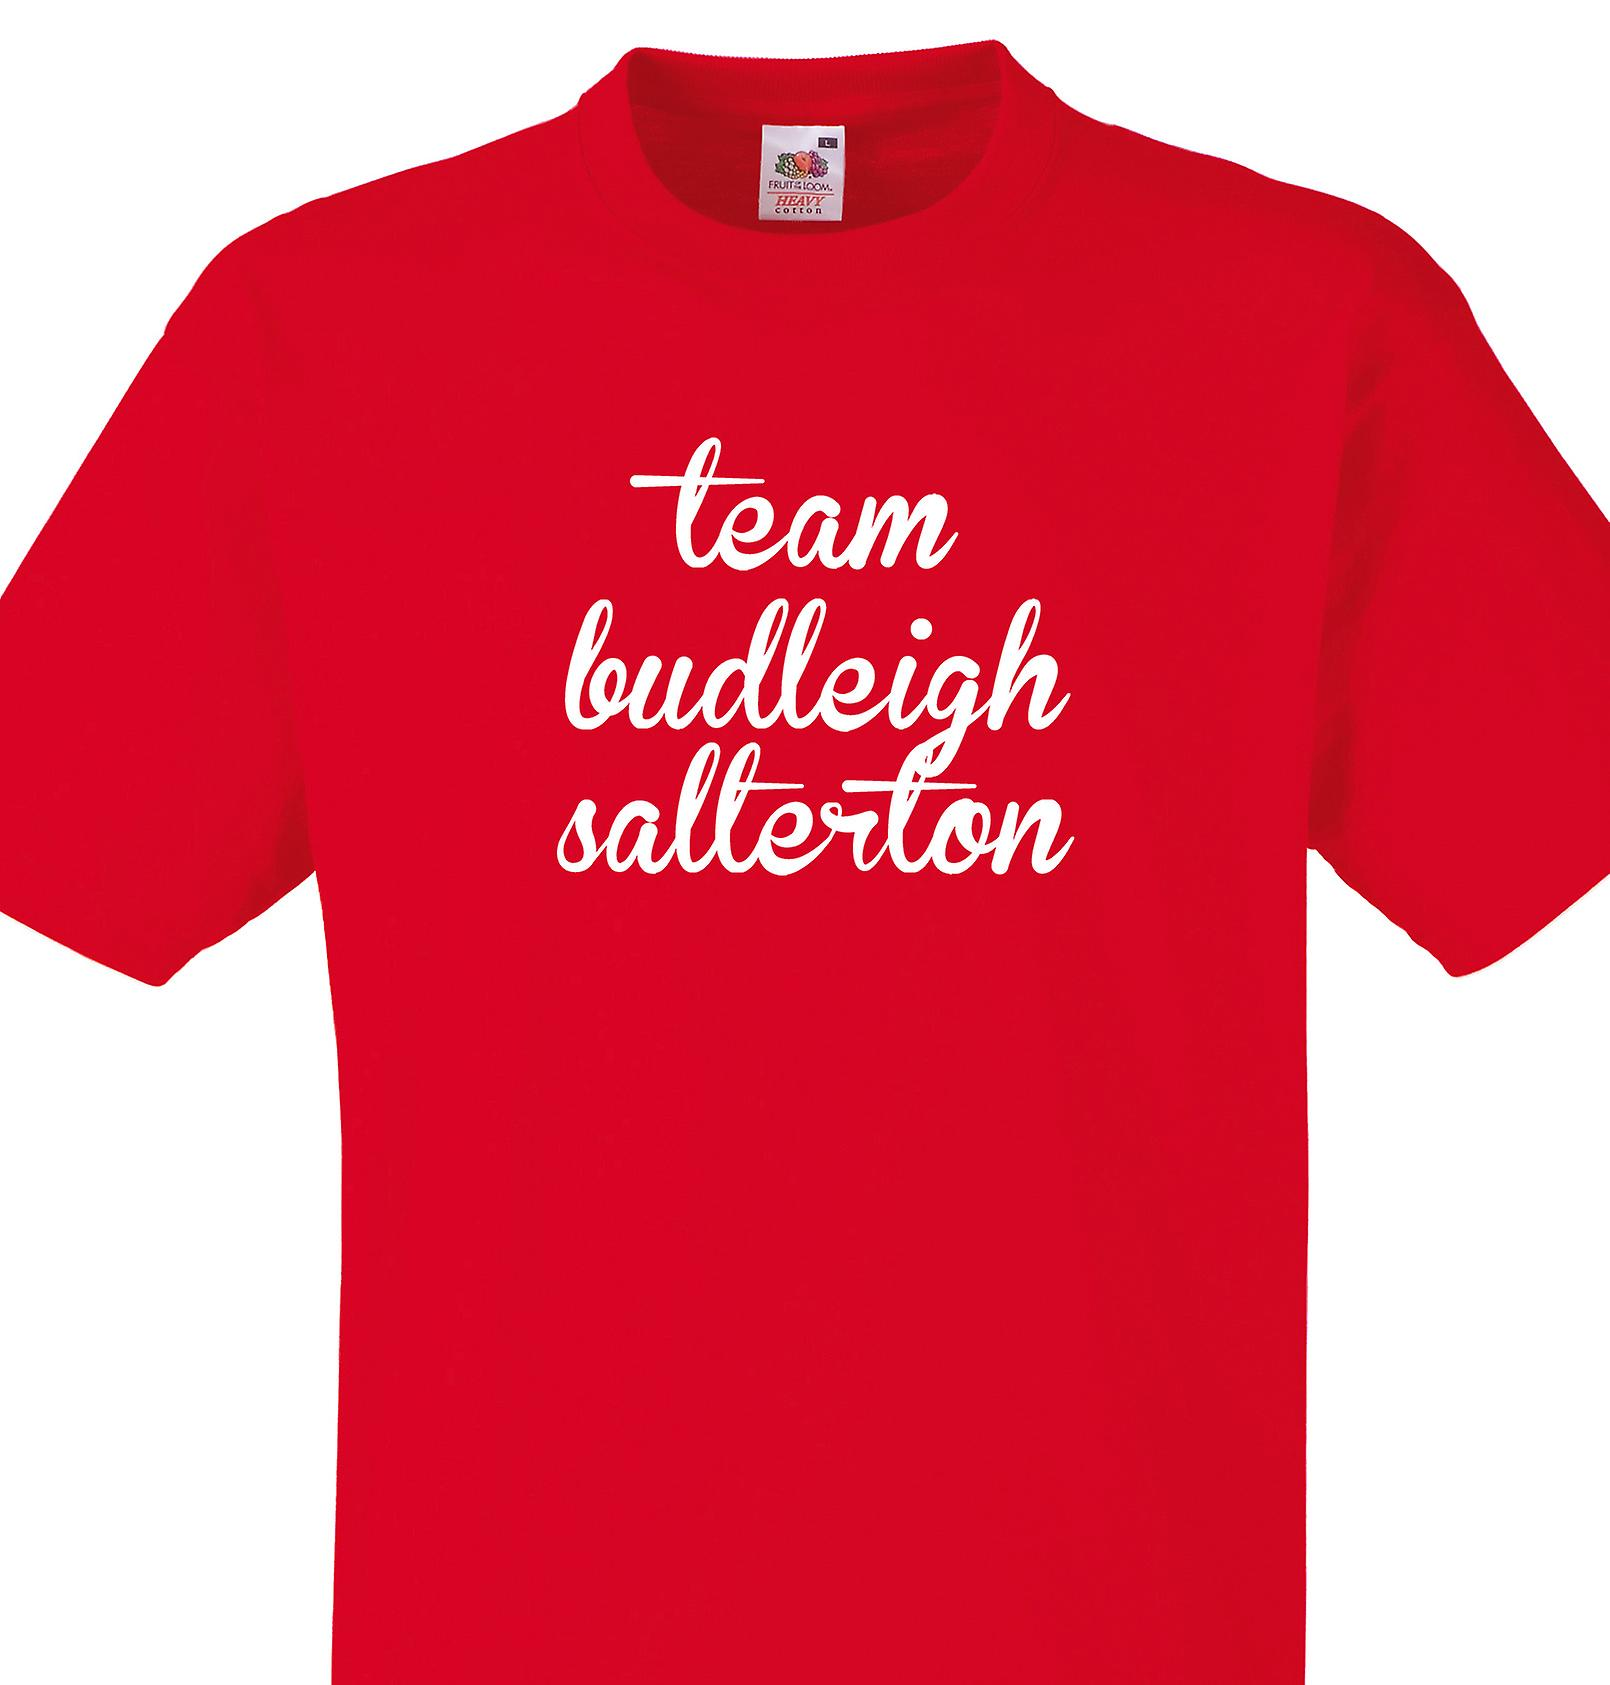 Team Budleigh salterton Red T shirt